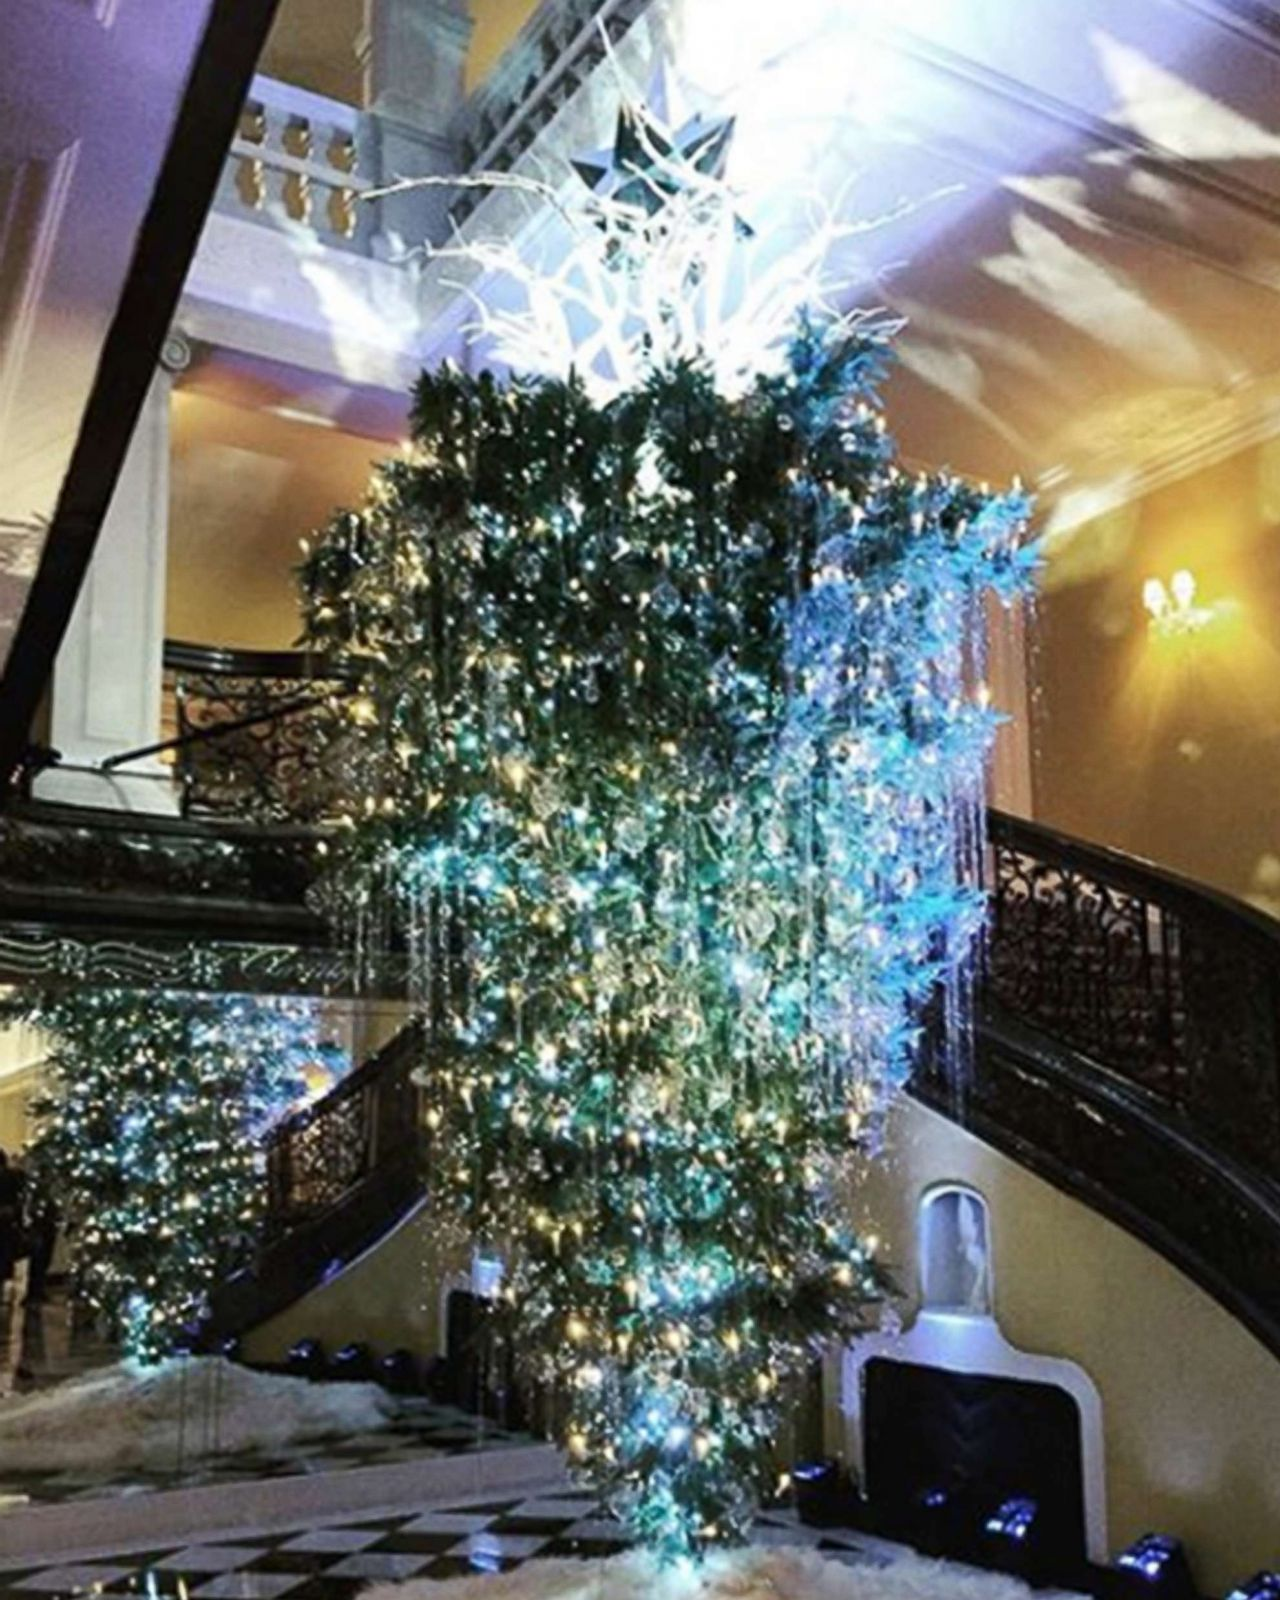 Upside Down Christmas Tree Ceiling.People Are Flipping Out Over Upside Down Christmas Trees